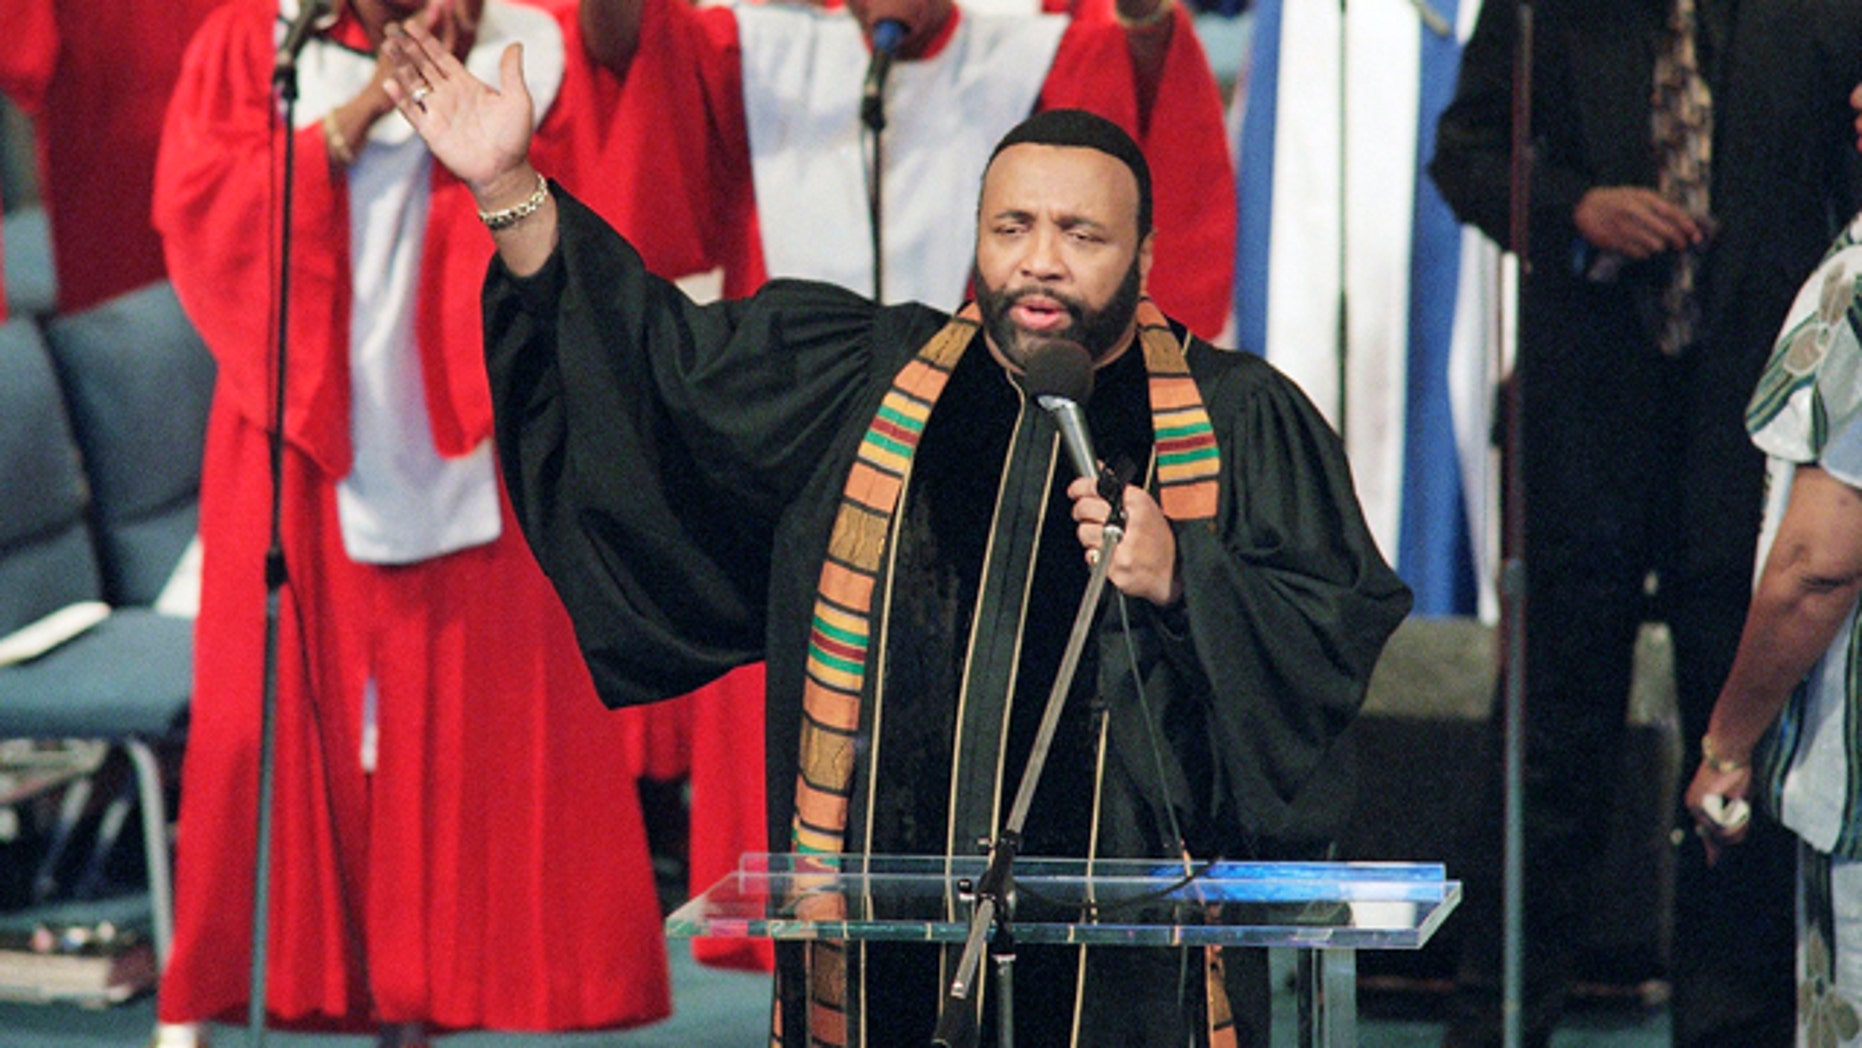 FILE - In this Sept. 1, 1996 file photo, Grammy winning gospel singer Andrae Crouch sings during service at the Christ Memorial church in Pacoima, Calif. Crouch, a legendary gospel performer, songwriter and choir director whose work graced songs by Michael Jackson and Madonna and movies such as The Lion King, has died at age 72. (AP Photo/Frank Wiese, File)